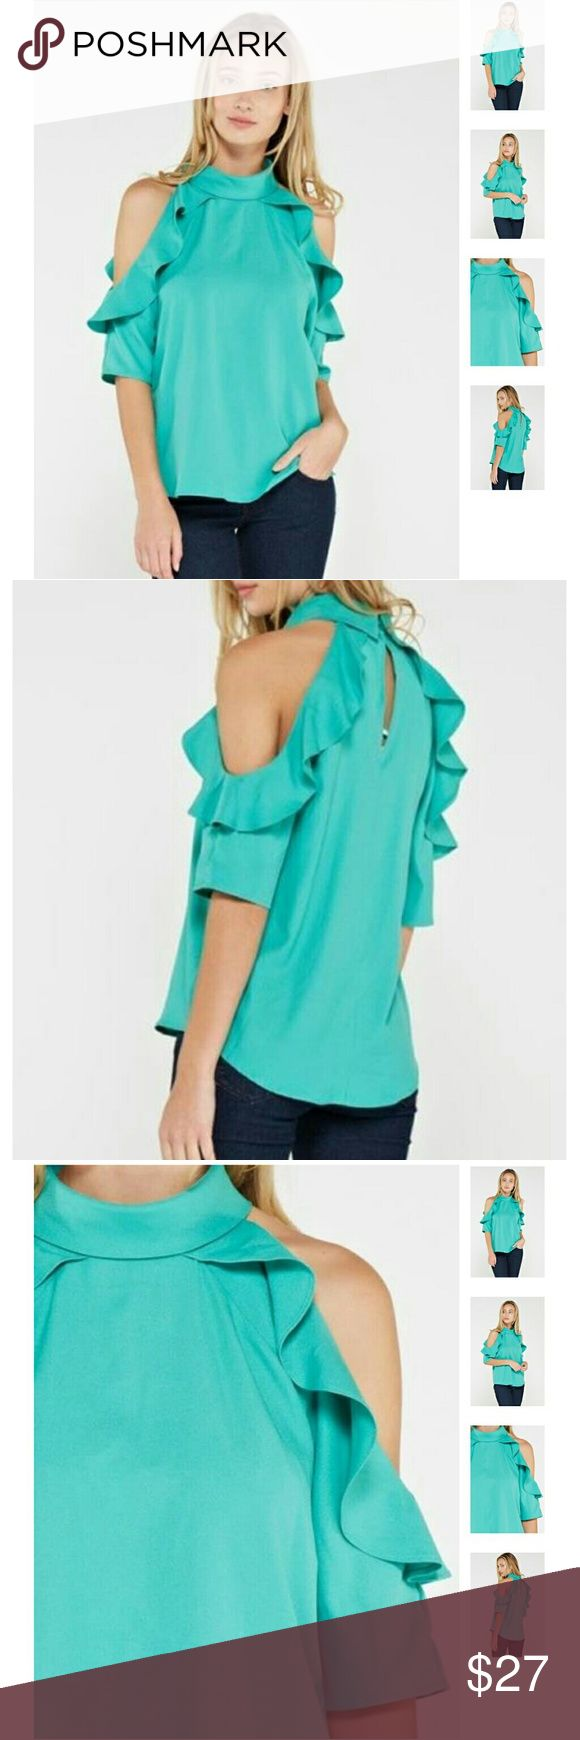 Green ruffled cold shoulder high neck blouse What do you do when you're feeling a little sassy? You put on this trendy teal cold shoulder ruffled top of course! Take on the day, and don't let anyone get in your way! This top shows you mean business and you're not afraid to go for what you want! Features, a key hole button back, high neckline and ruffled cold shoulders.r  100% Polyester Tops Blouses